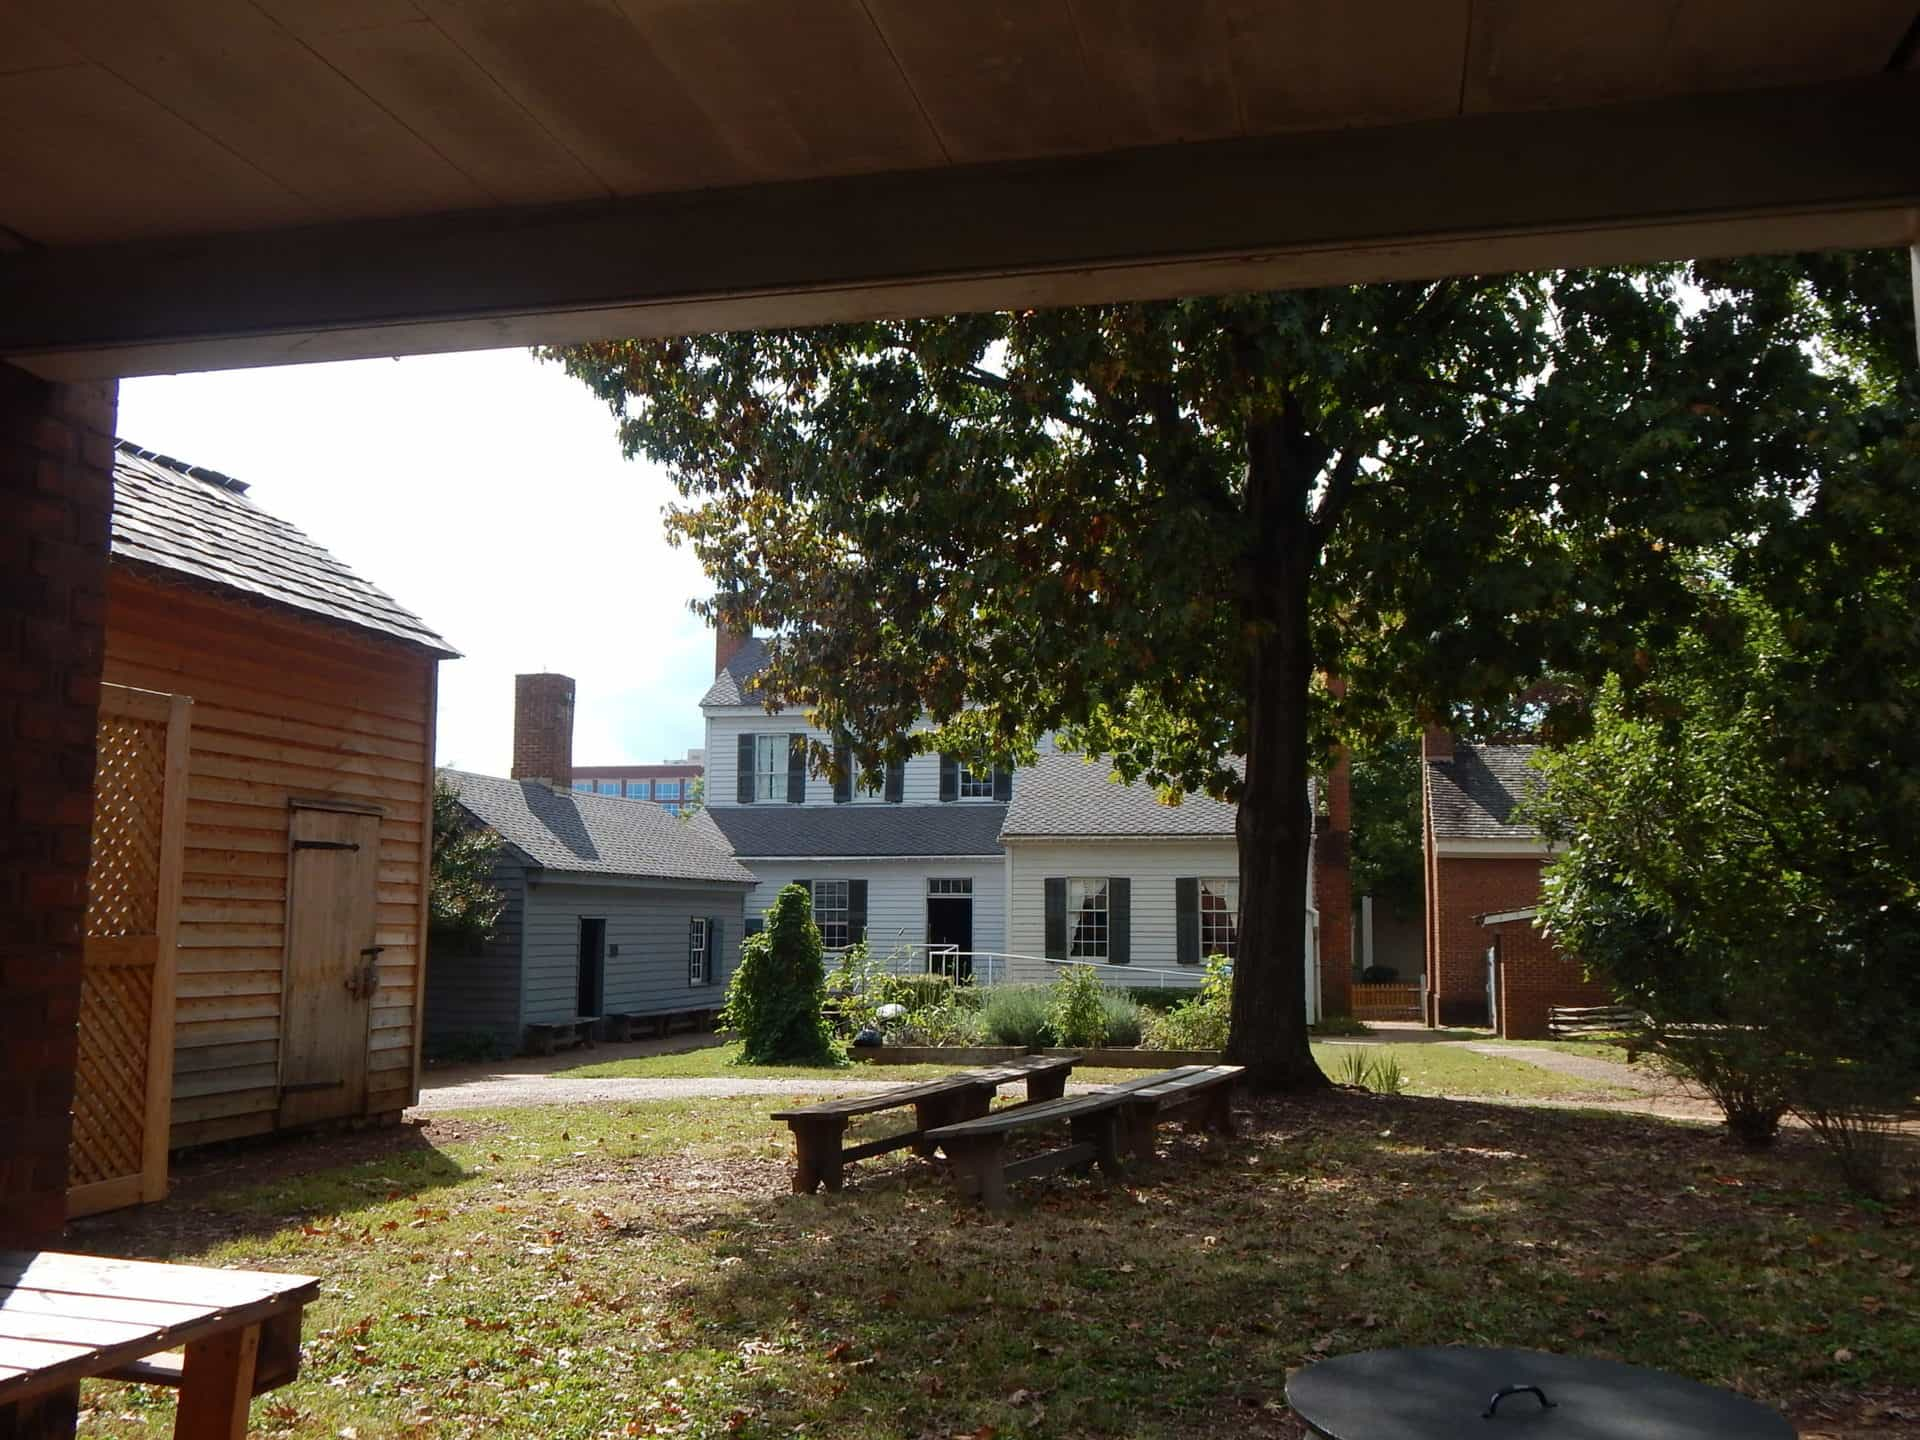 Constitutional Village - Courtyard 4